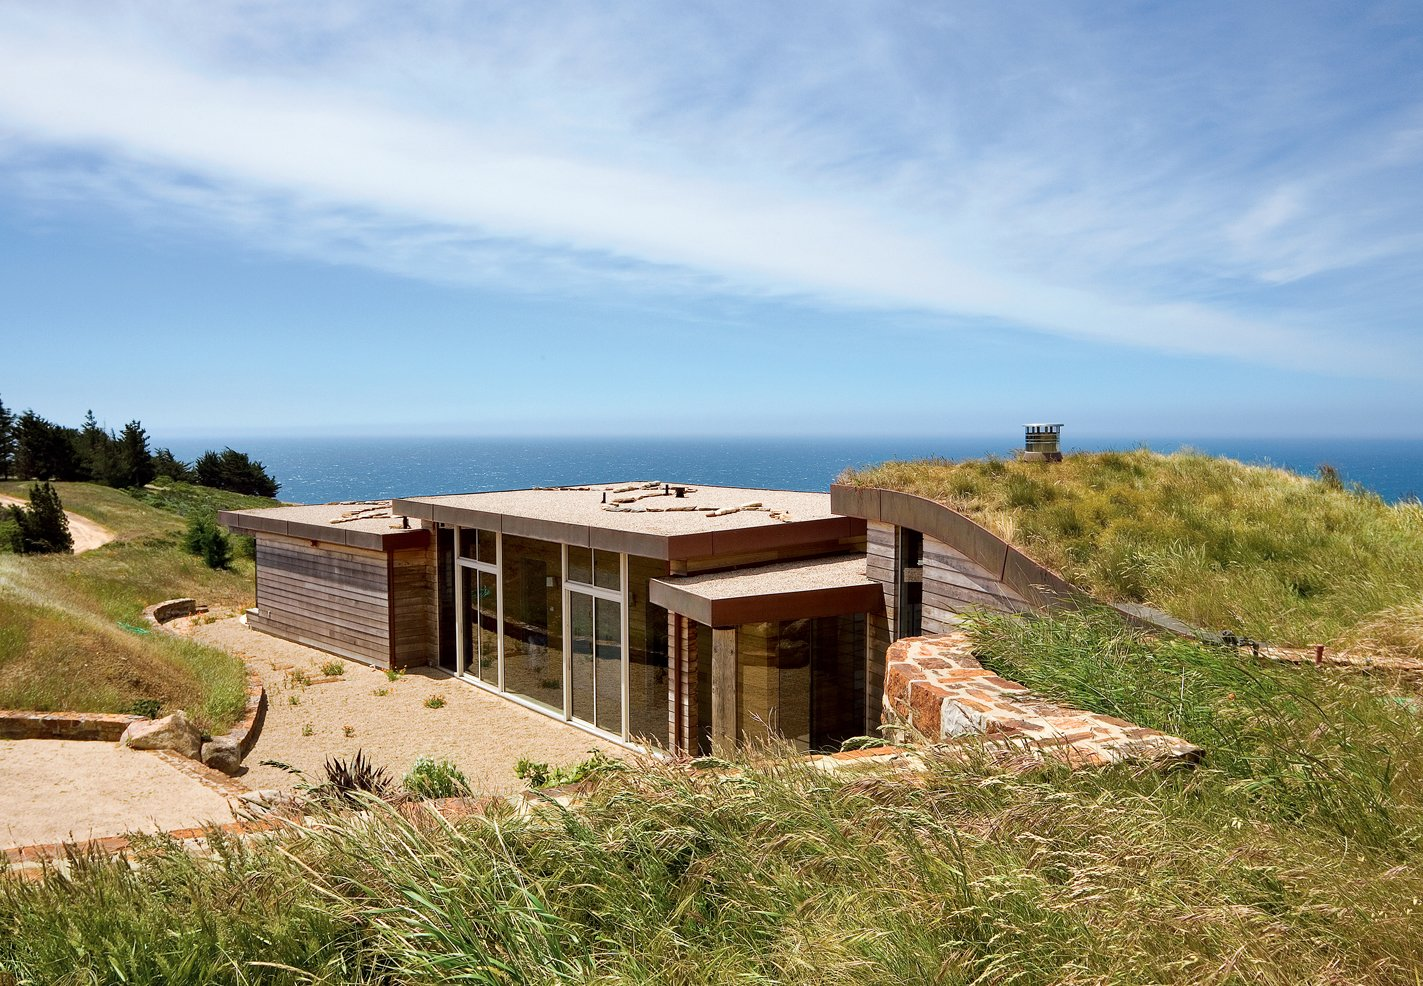 11 Hillside Homes That Feature a Balancing Act With Nature